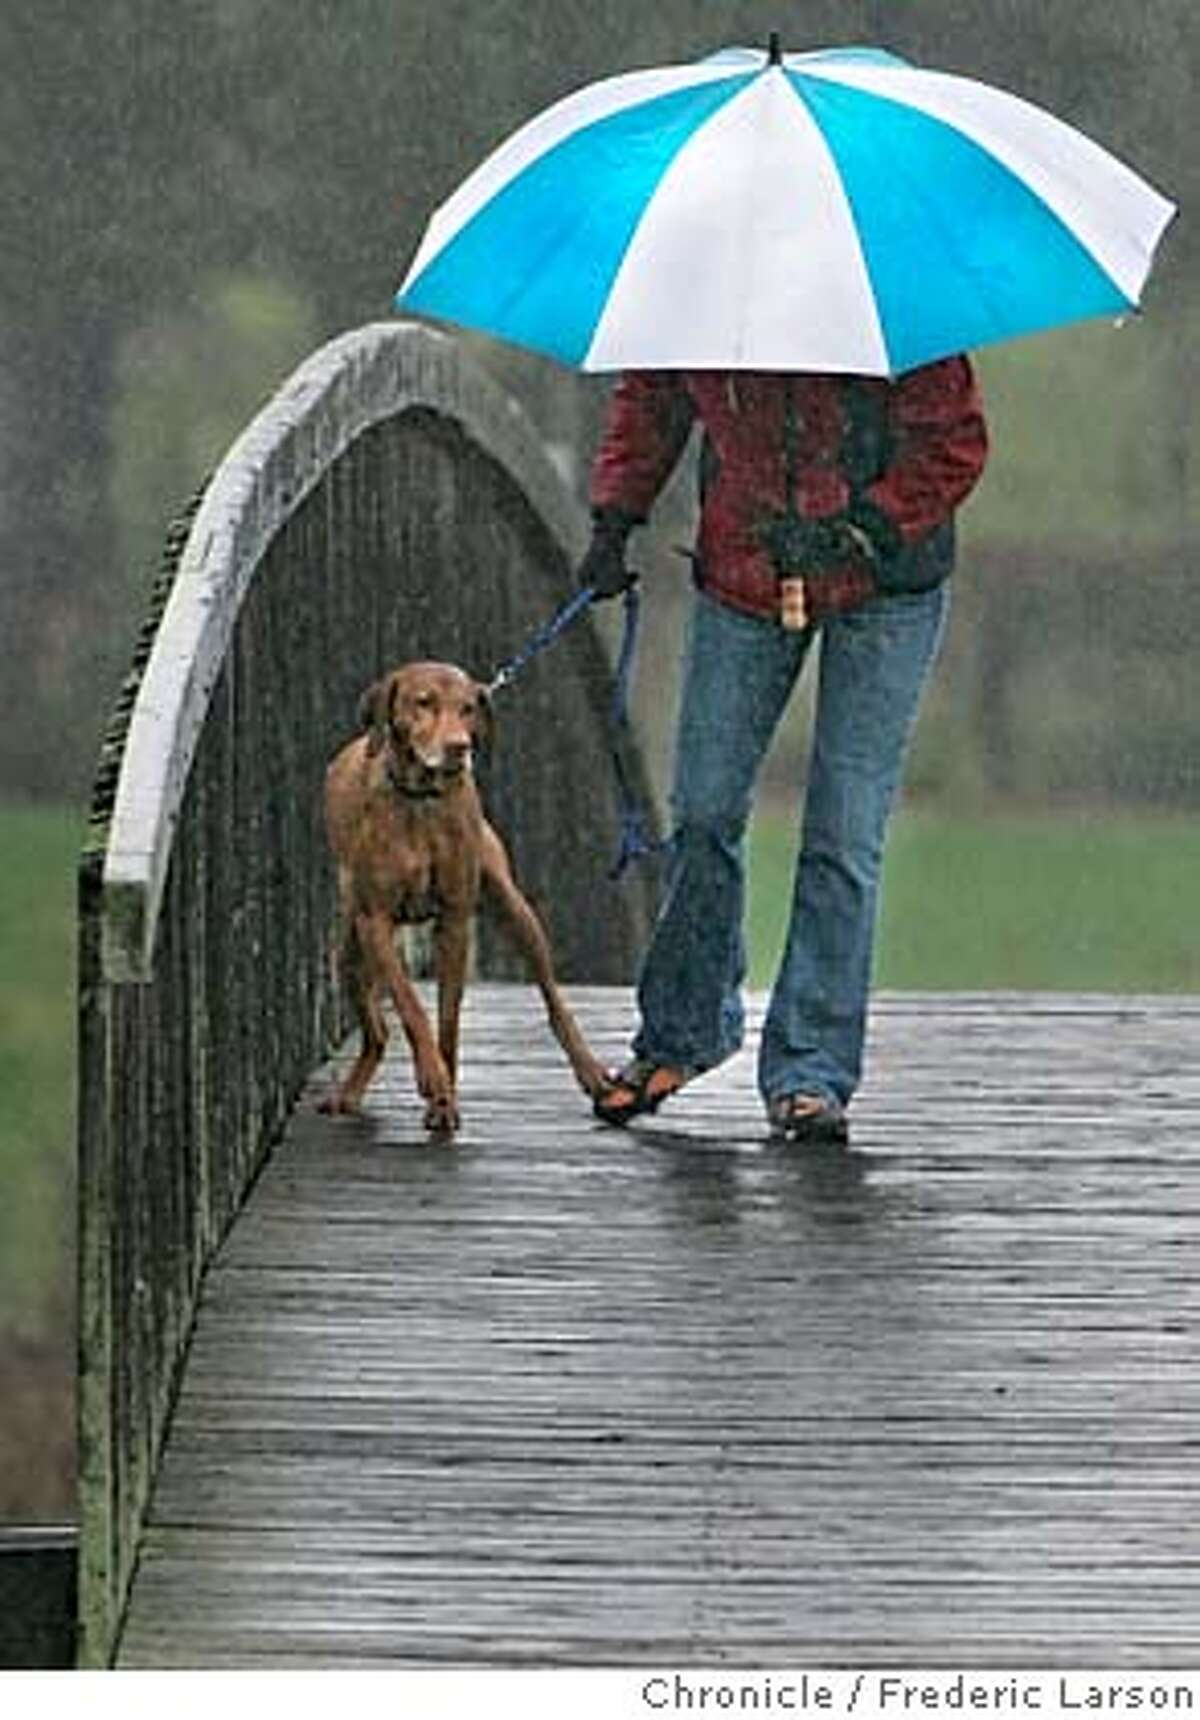 """WEATHER_0187_fl.jpg """"Chanuncy"""" the wet pooch was not all game in walking in the rain as owner Carol Freeman of Mill Valley leashes the pup along a rainy footbridge in Mill Valley. The calm before the bigger storm tonight had some Marin residents out walking in rain. 12/27/05 Mill Valley CA Frederic Larson San Francisco Chronicle"""